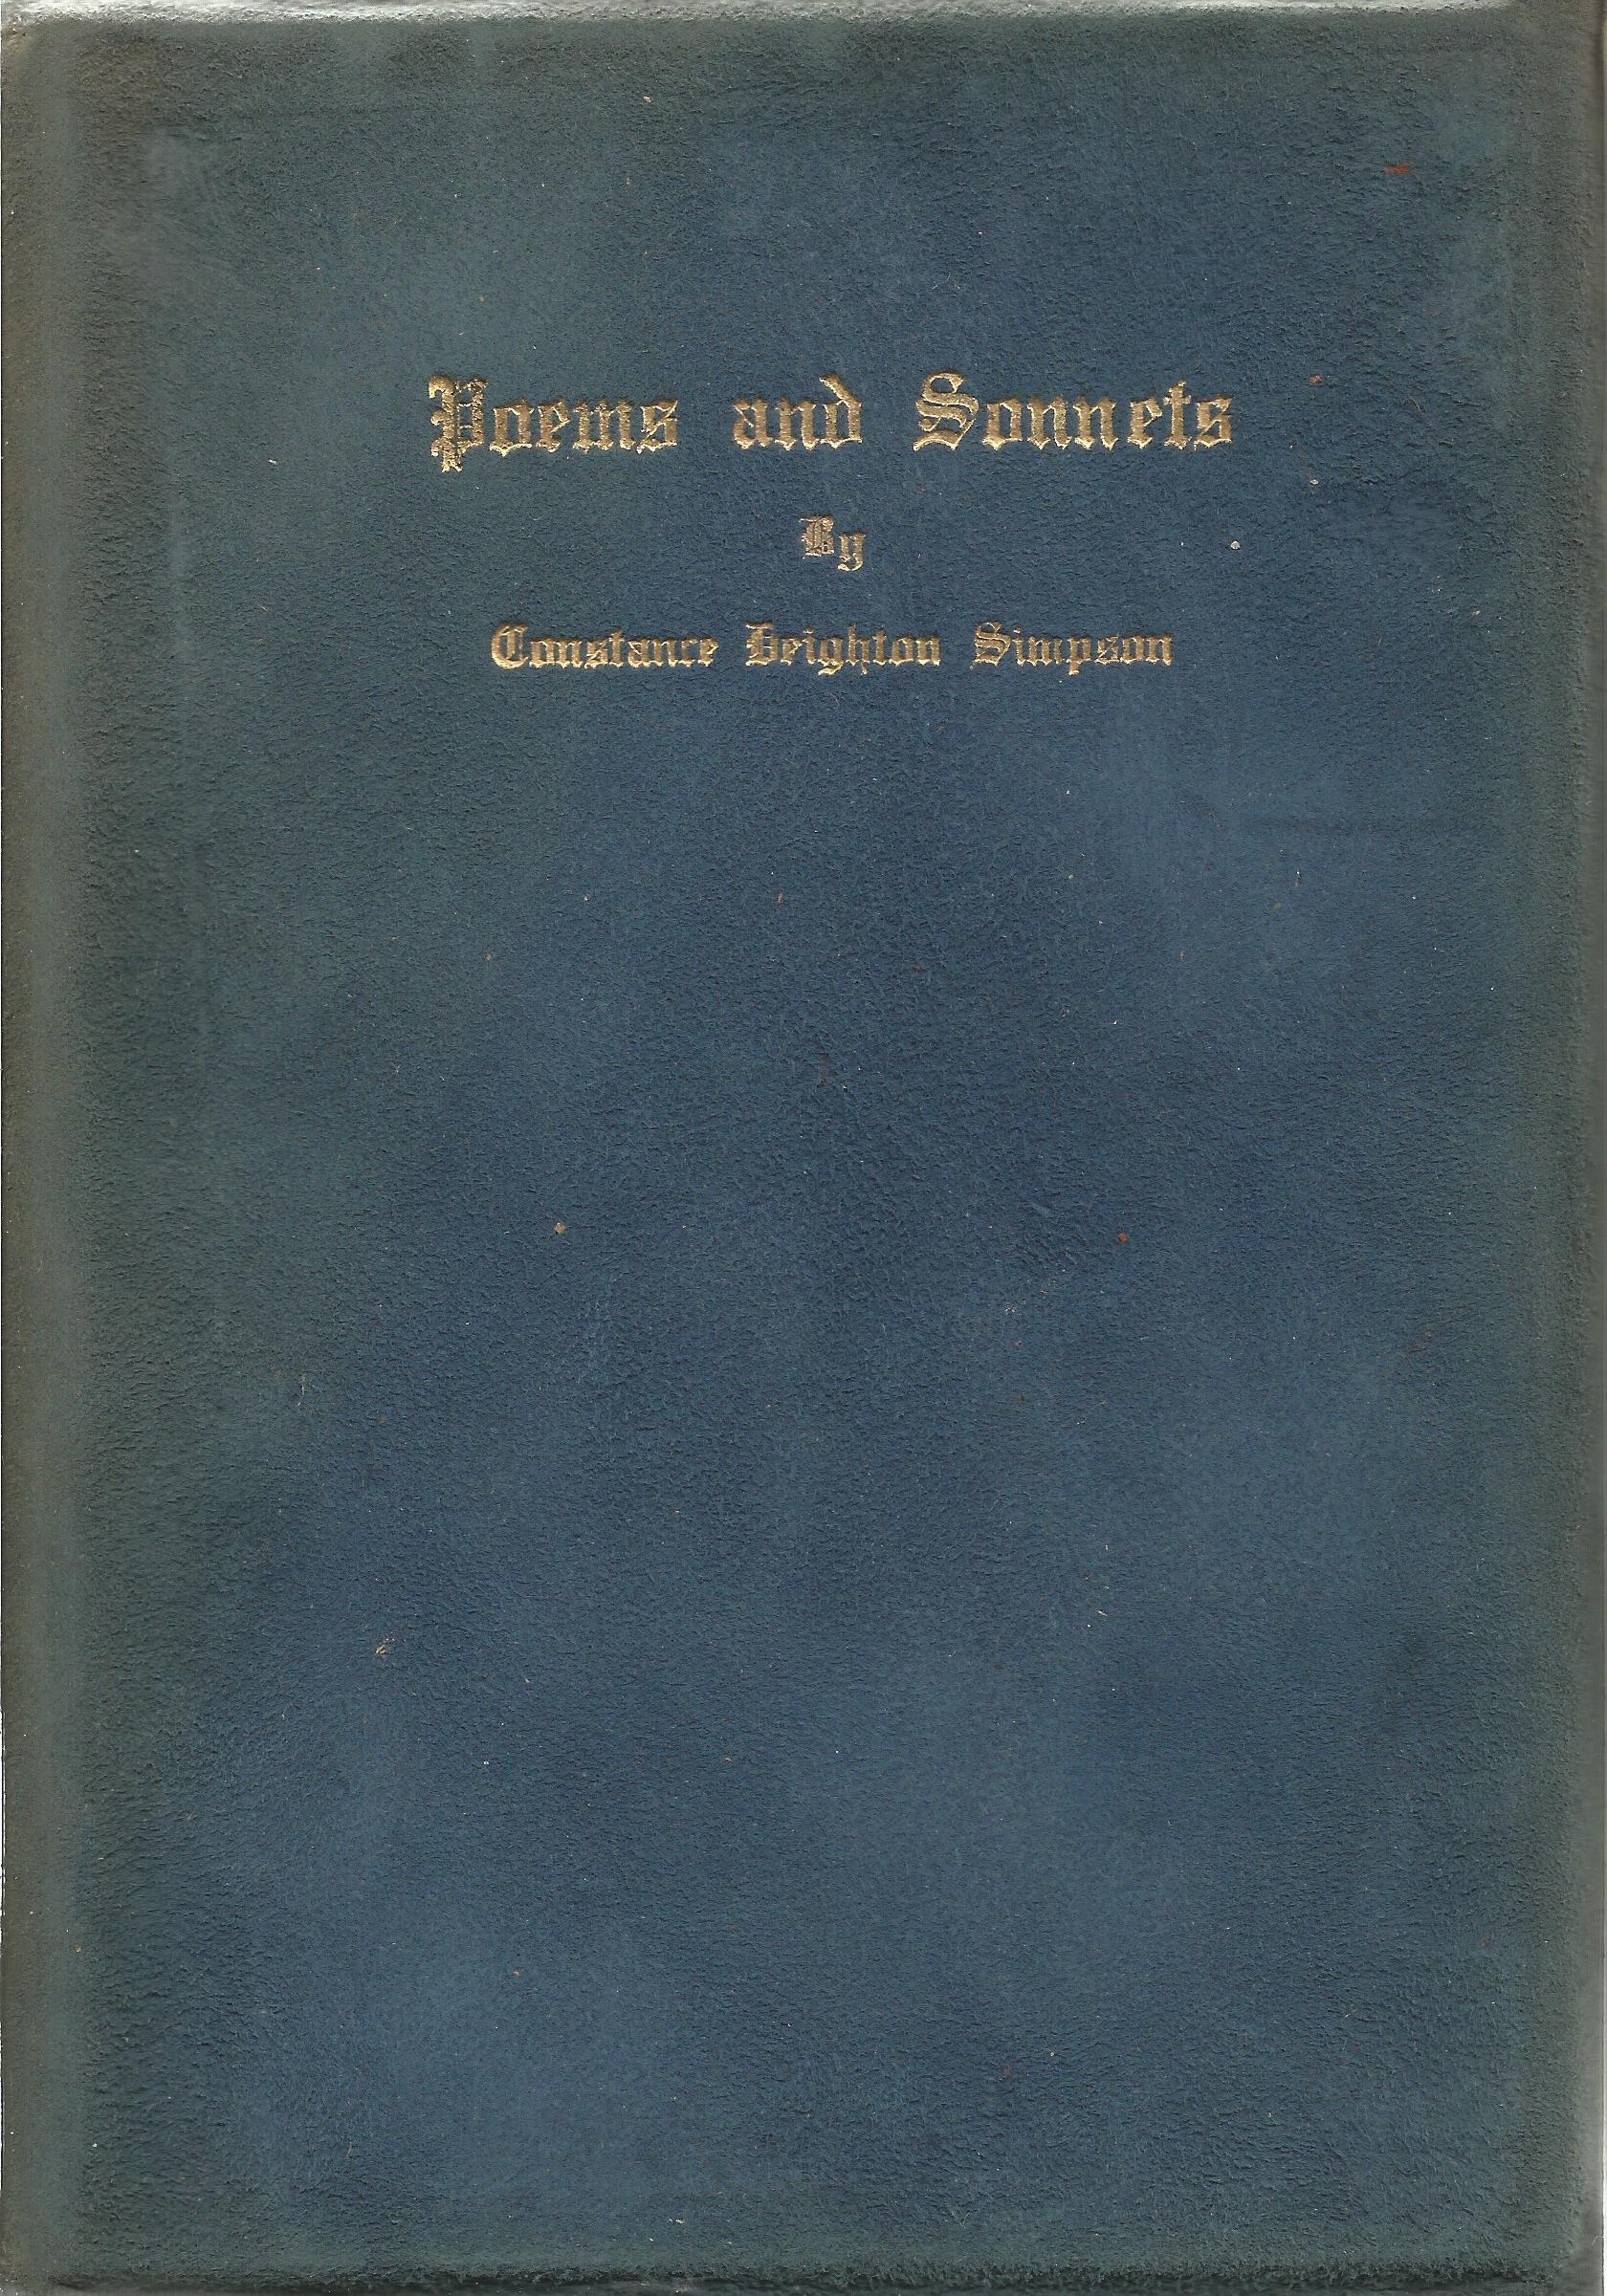 Constance Deighton Simpson Rare Suedex Cloth backed Book with Gold Lettering Poems and Sonnets